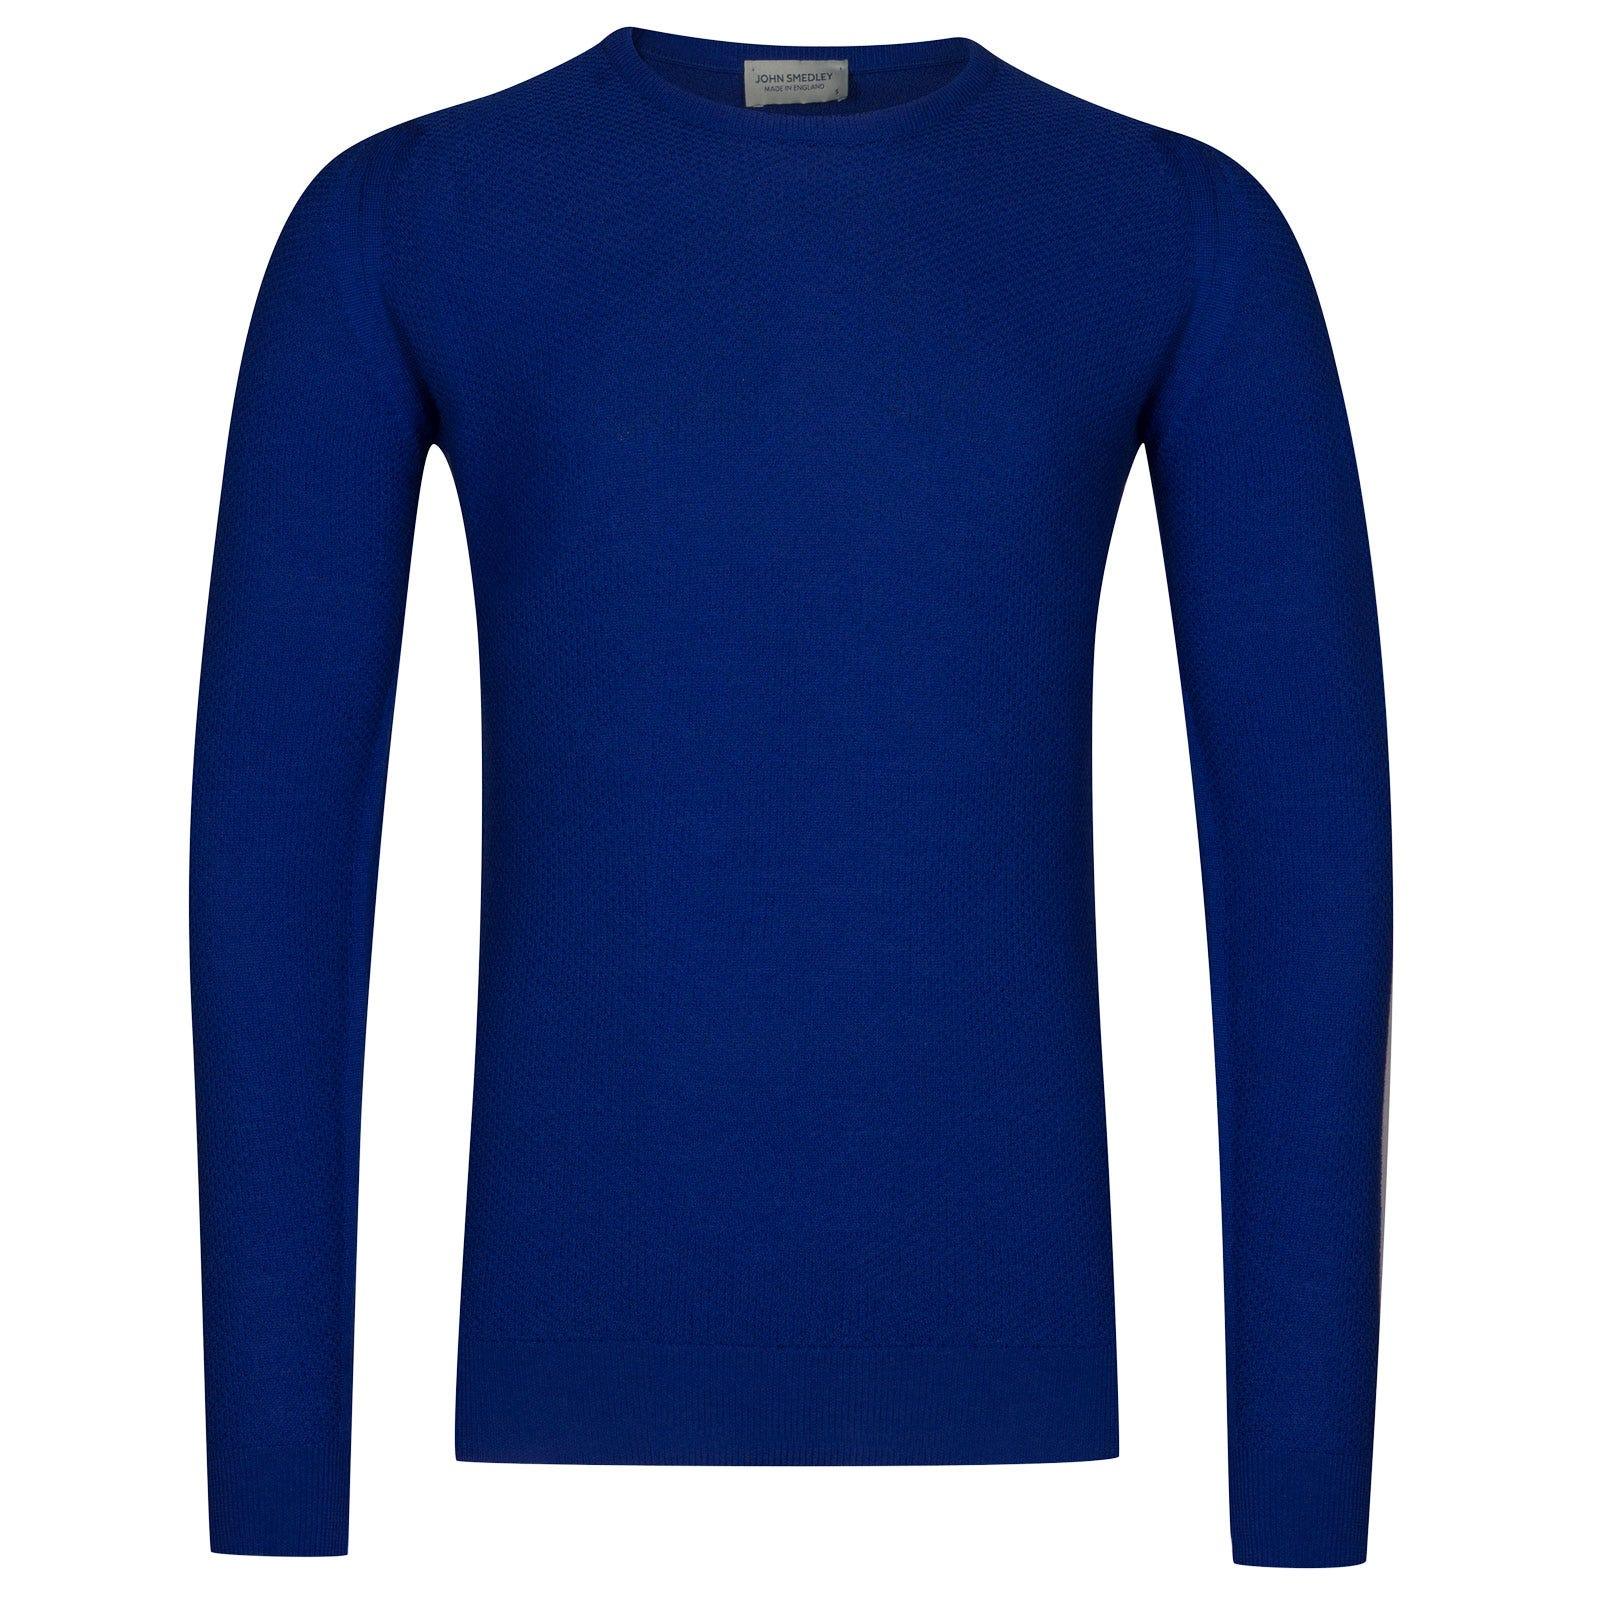 John Smedley 1Singular Merino Wool Pullover in Coniston Blue-XL